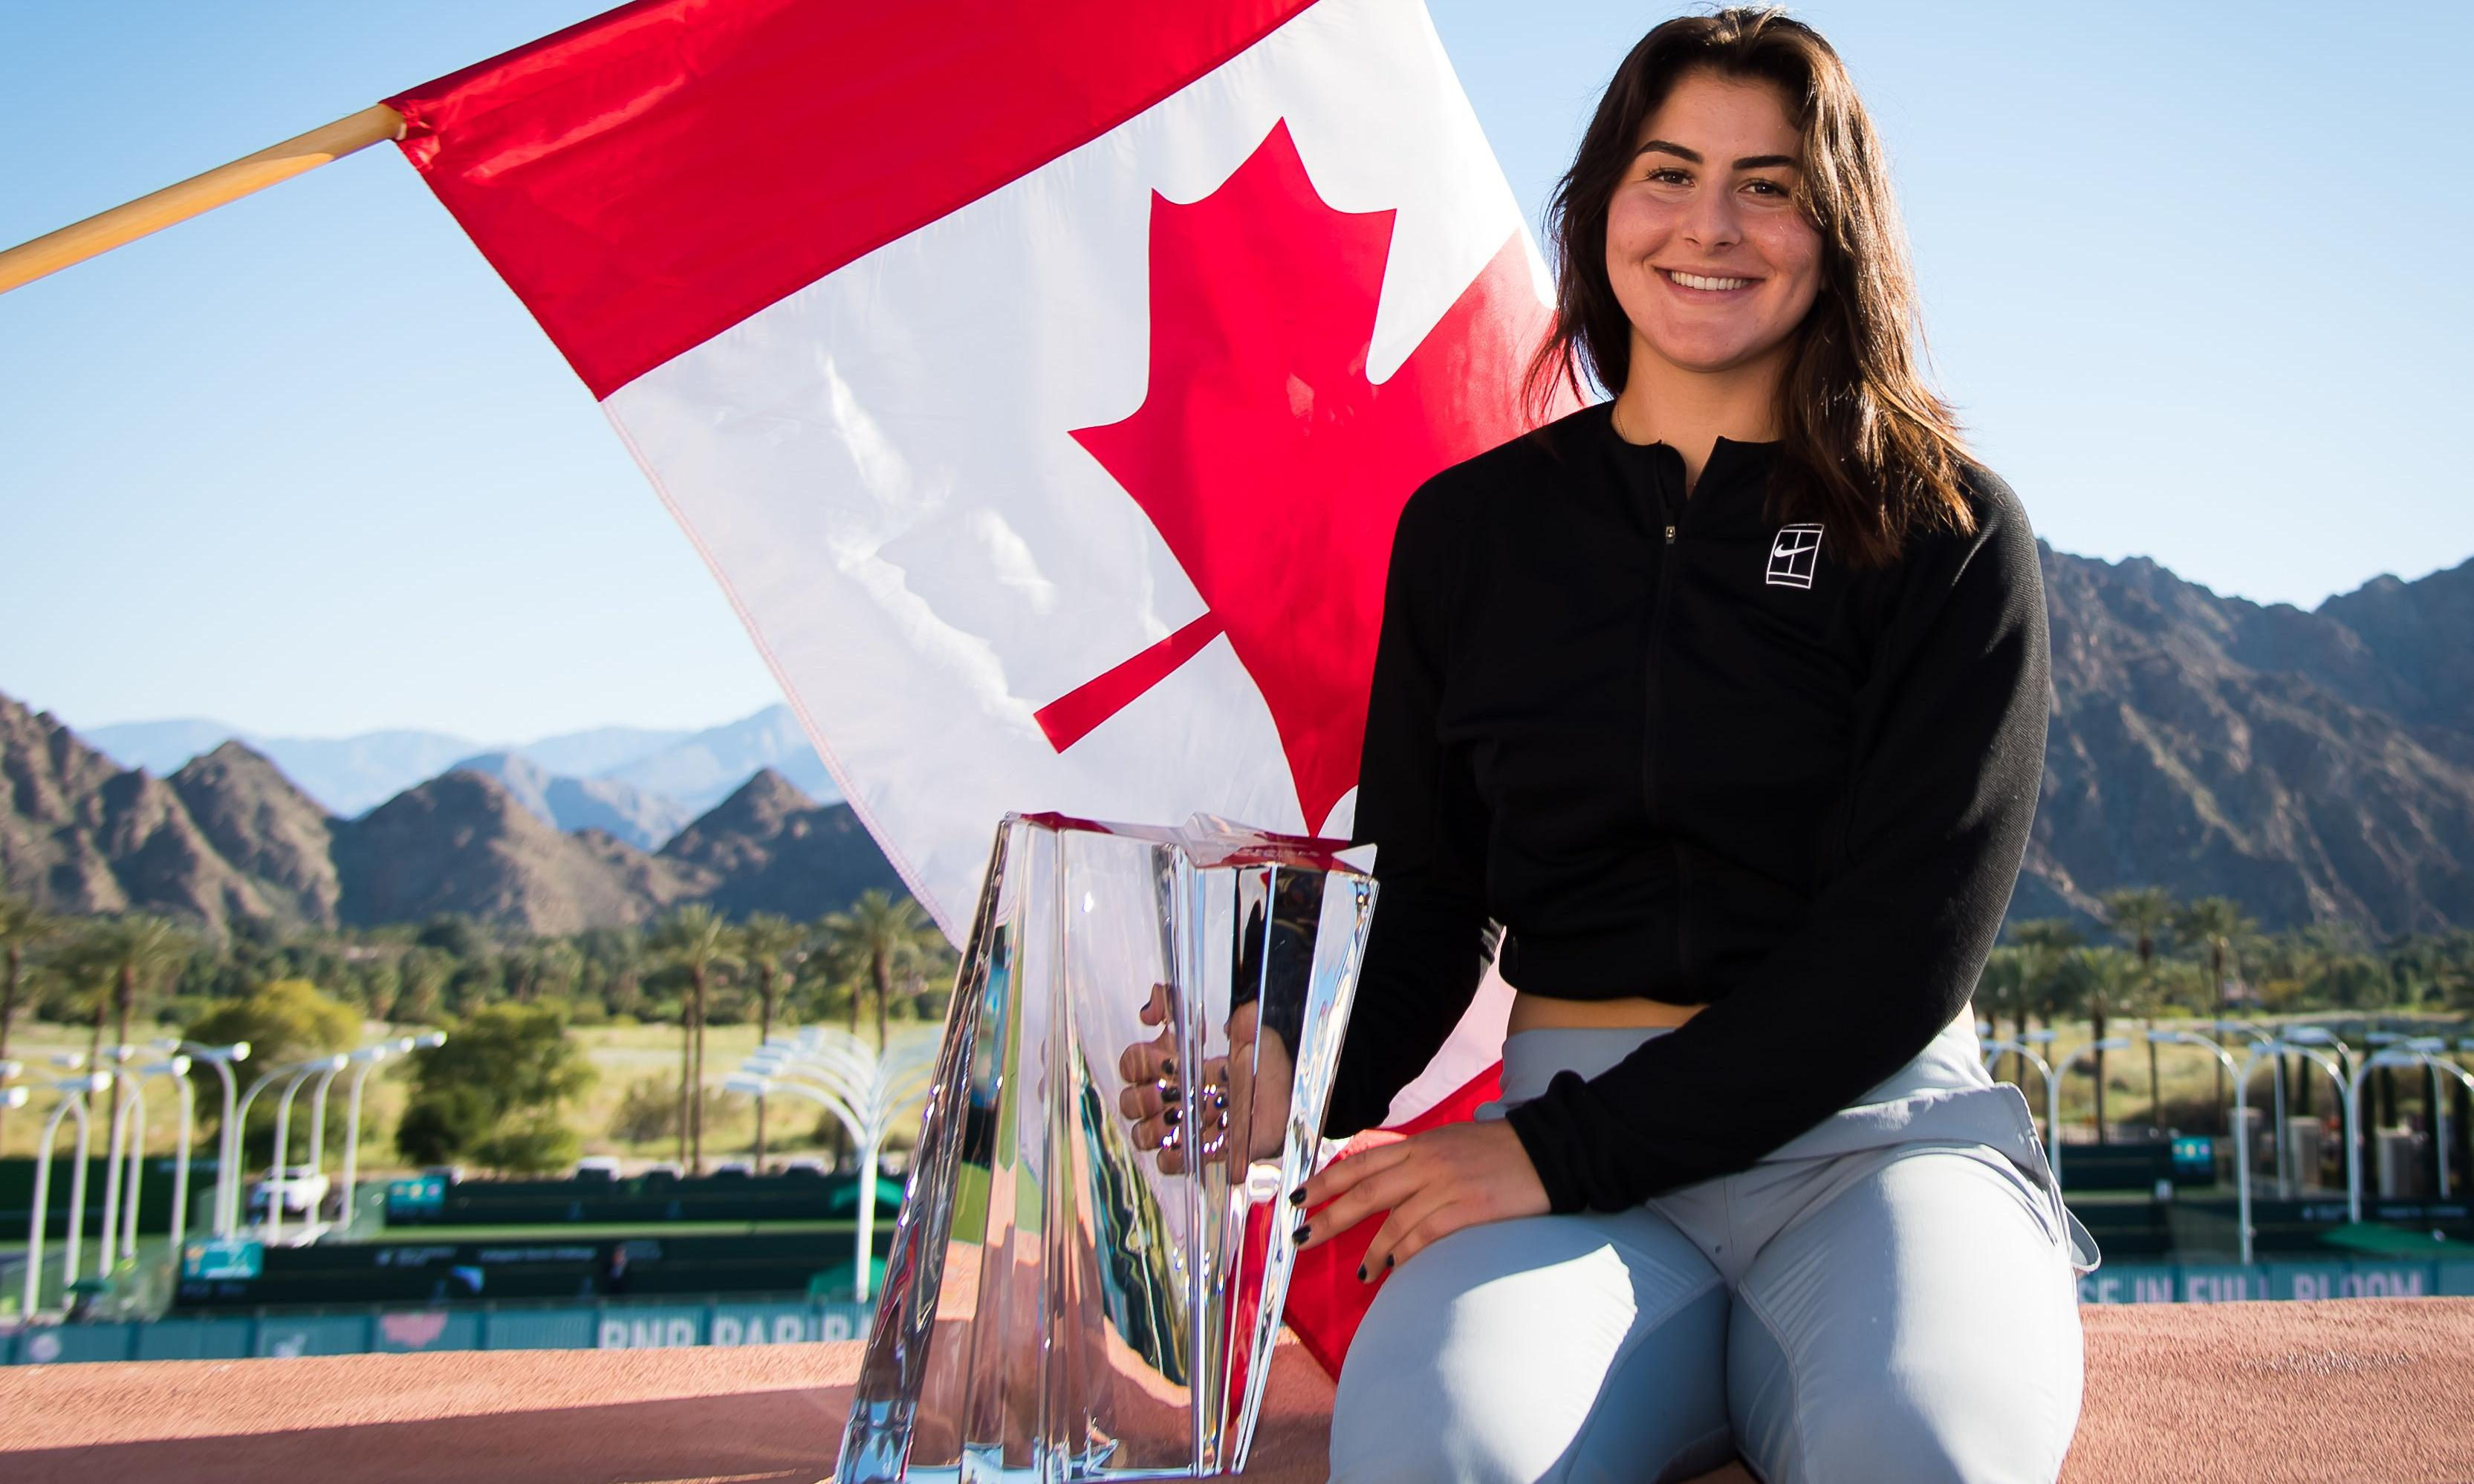 From toil to triumph in 12 months: the remarkable rise of Bianca Andreescu